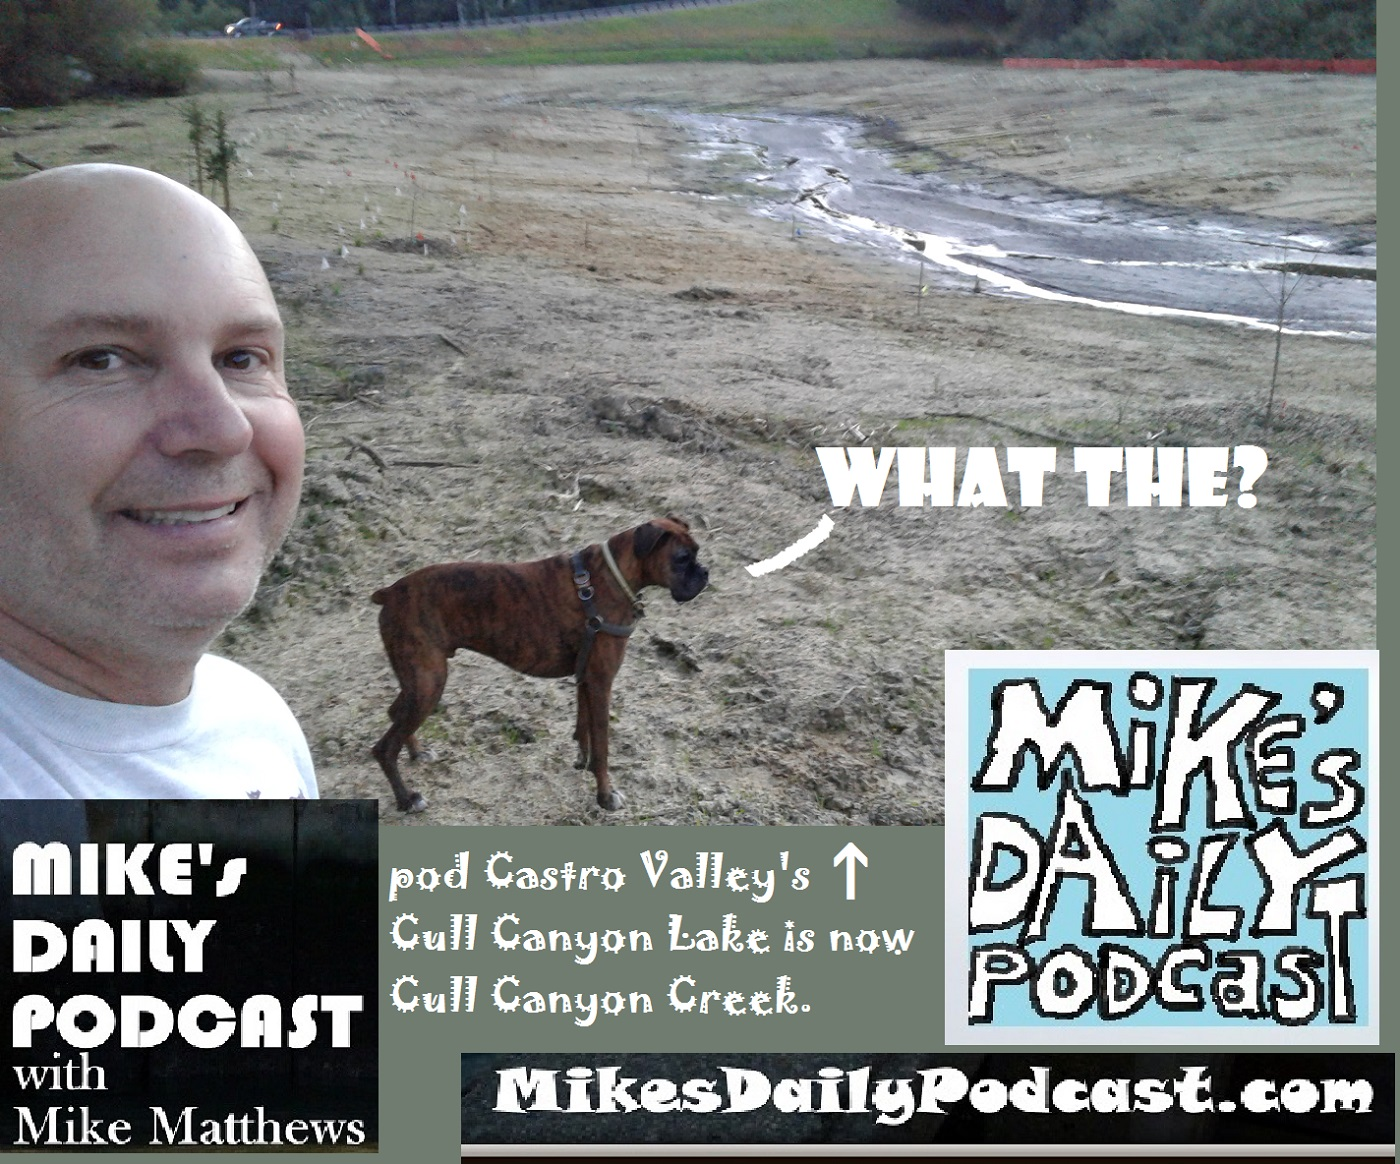 mikes-daily-podcast-1217-cull-canyon-lake